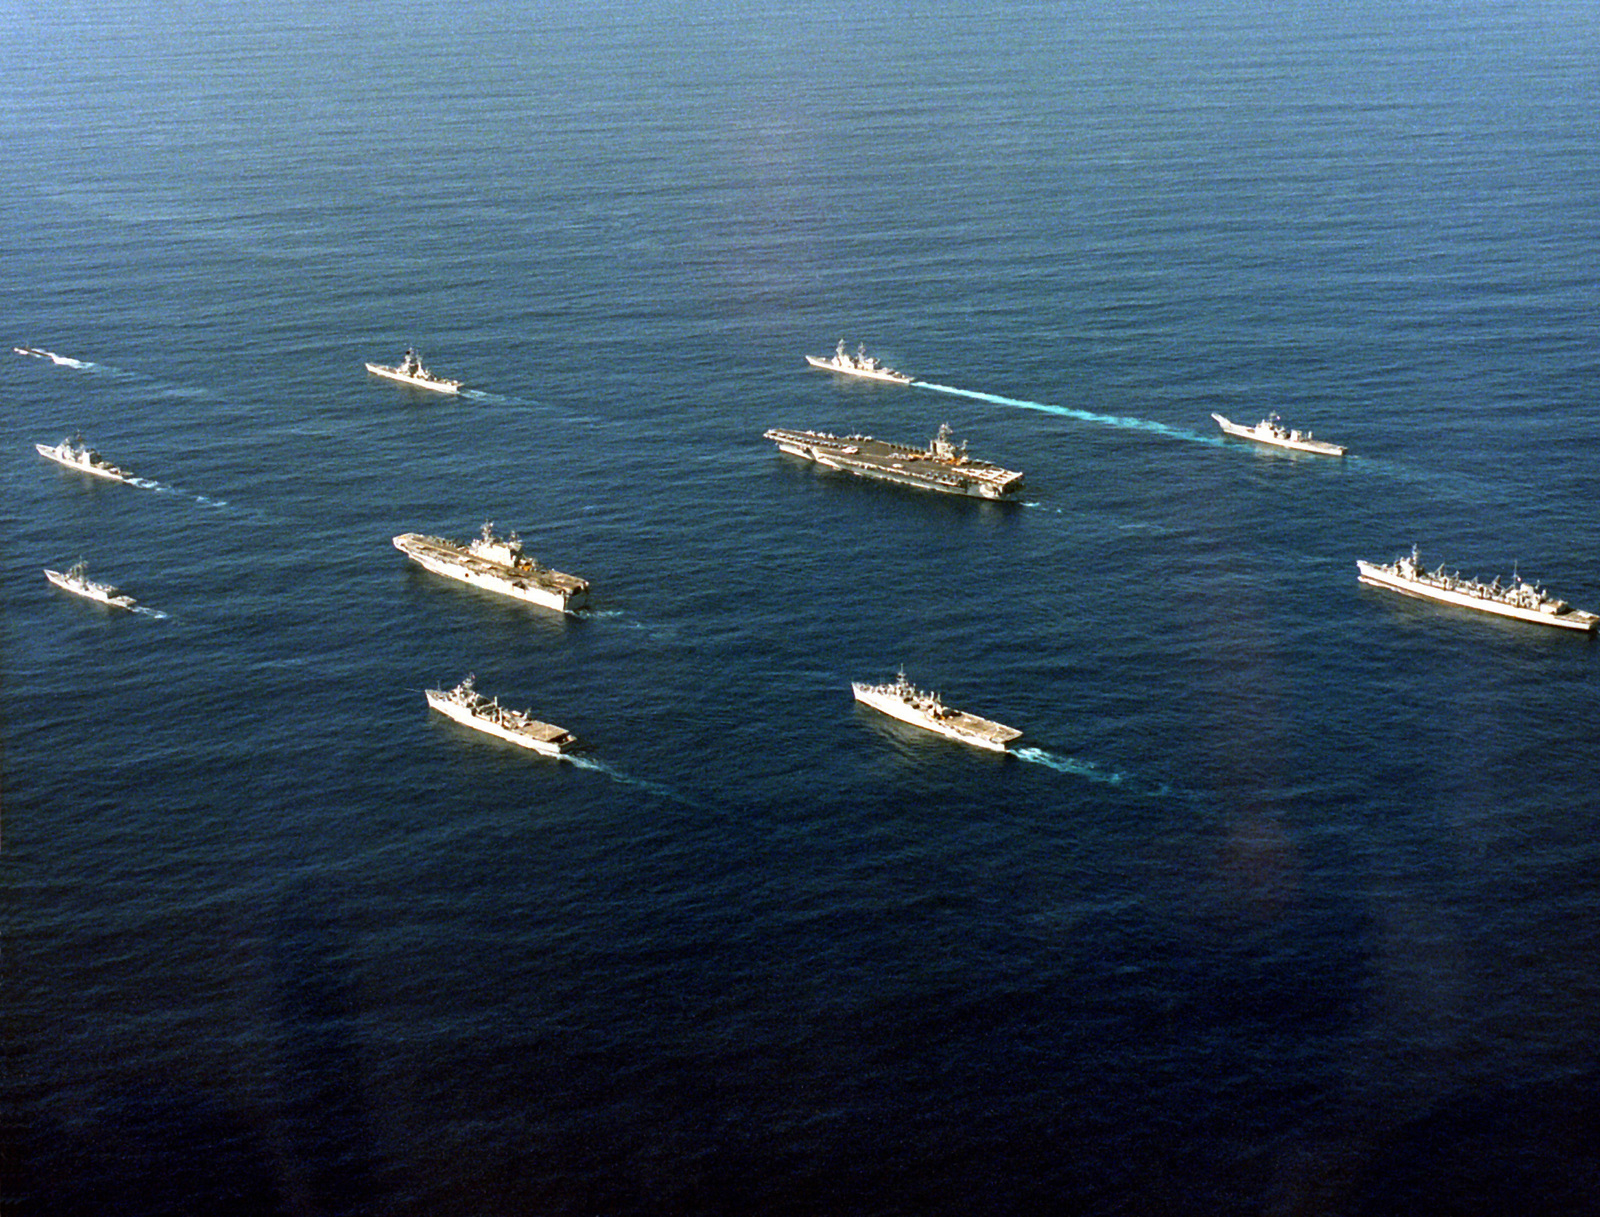 The Battle Group built around the nuclear-powered aircraft carrier USS CARL VINSON (CVN-70) steams towards a naval operational training are off the southern California coast. The ships are, (clockwise from the lower left), the guided missile frigate USS REUBEN JAMES (FFG-57), guided missile cruiser USS ANTIETAM (CG-54), nuclear-powered attack submarine USS ASHEVILLE (SSN-758), nuclear-powered guided missile cruiser USS ARKANSAS (CGN-41), destroyer USS HEWITT (DD-988), fast combat support sh USS CAMDEN (AOE-2), amphibious assault ship USS PELELIU (LHA-5) & 3 unidentified amphibious ships